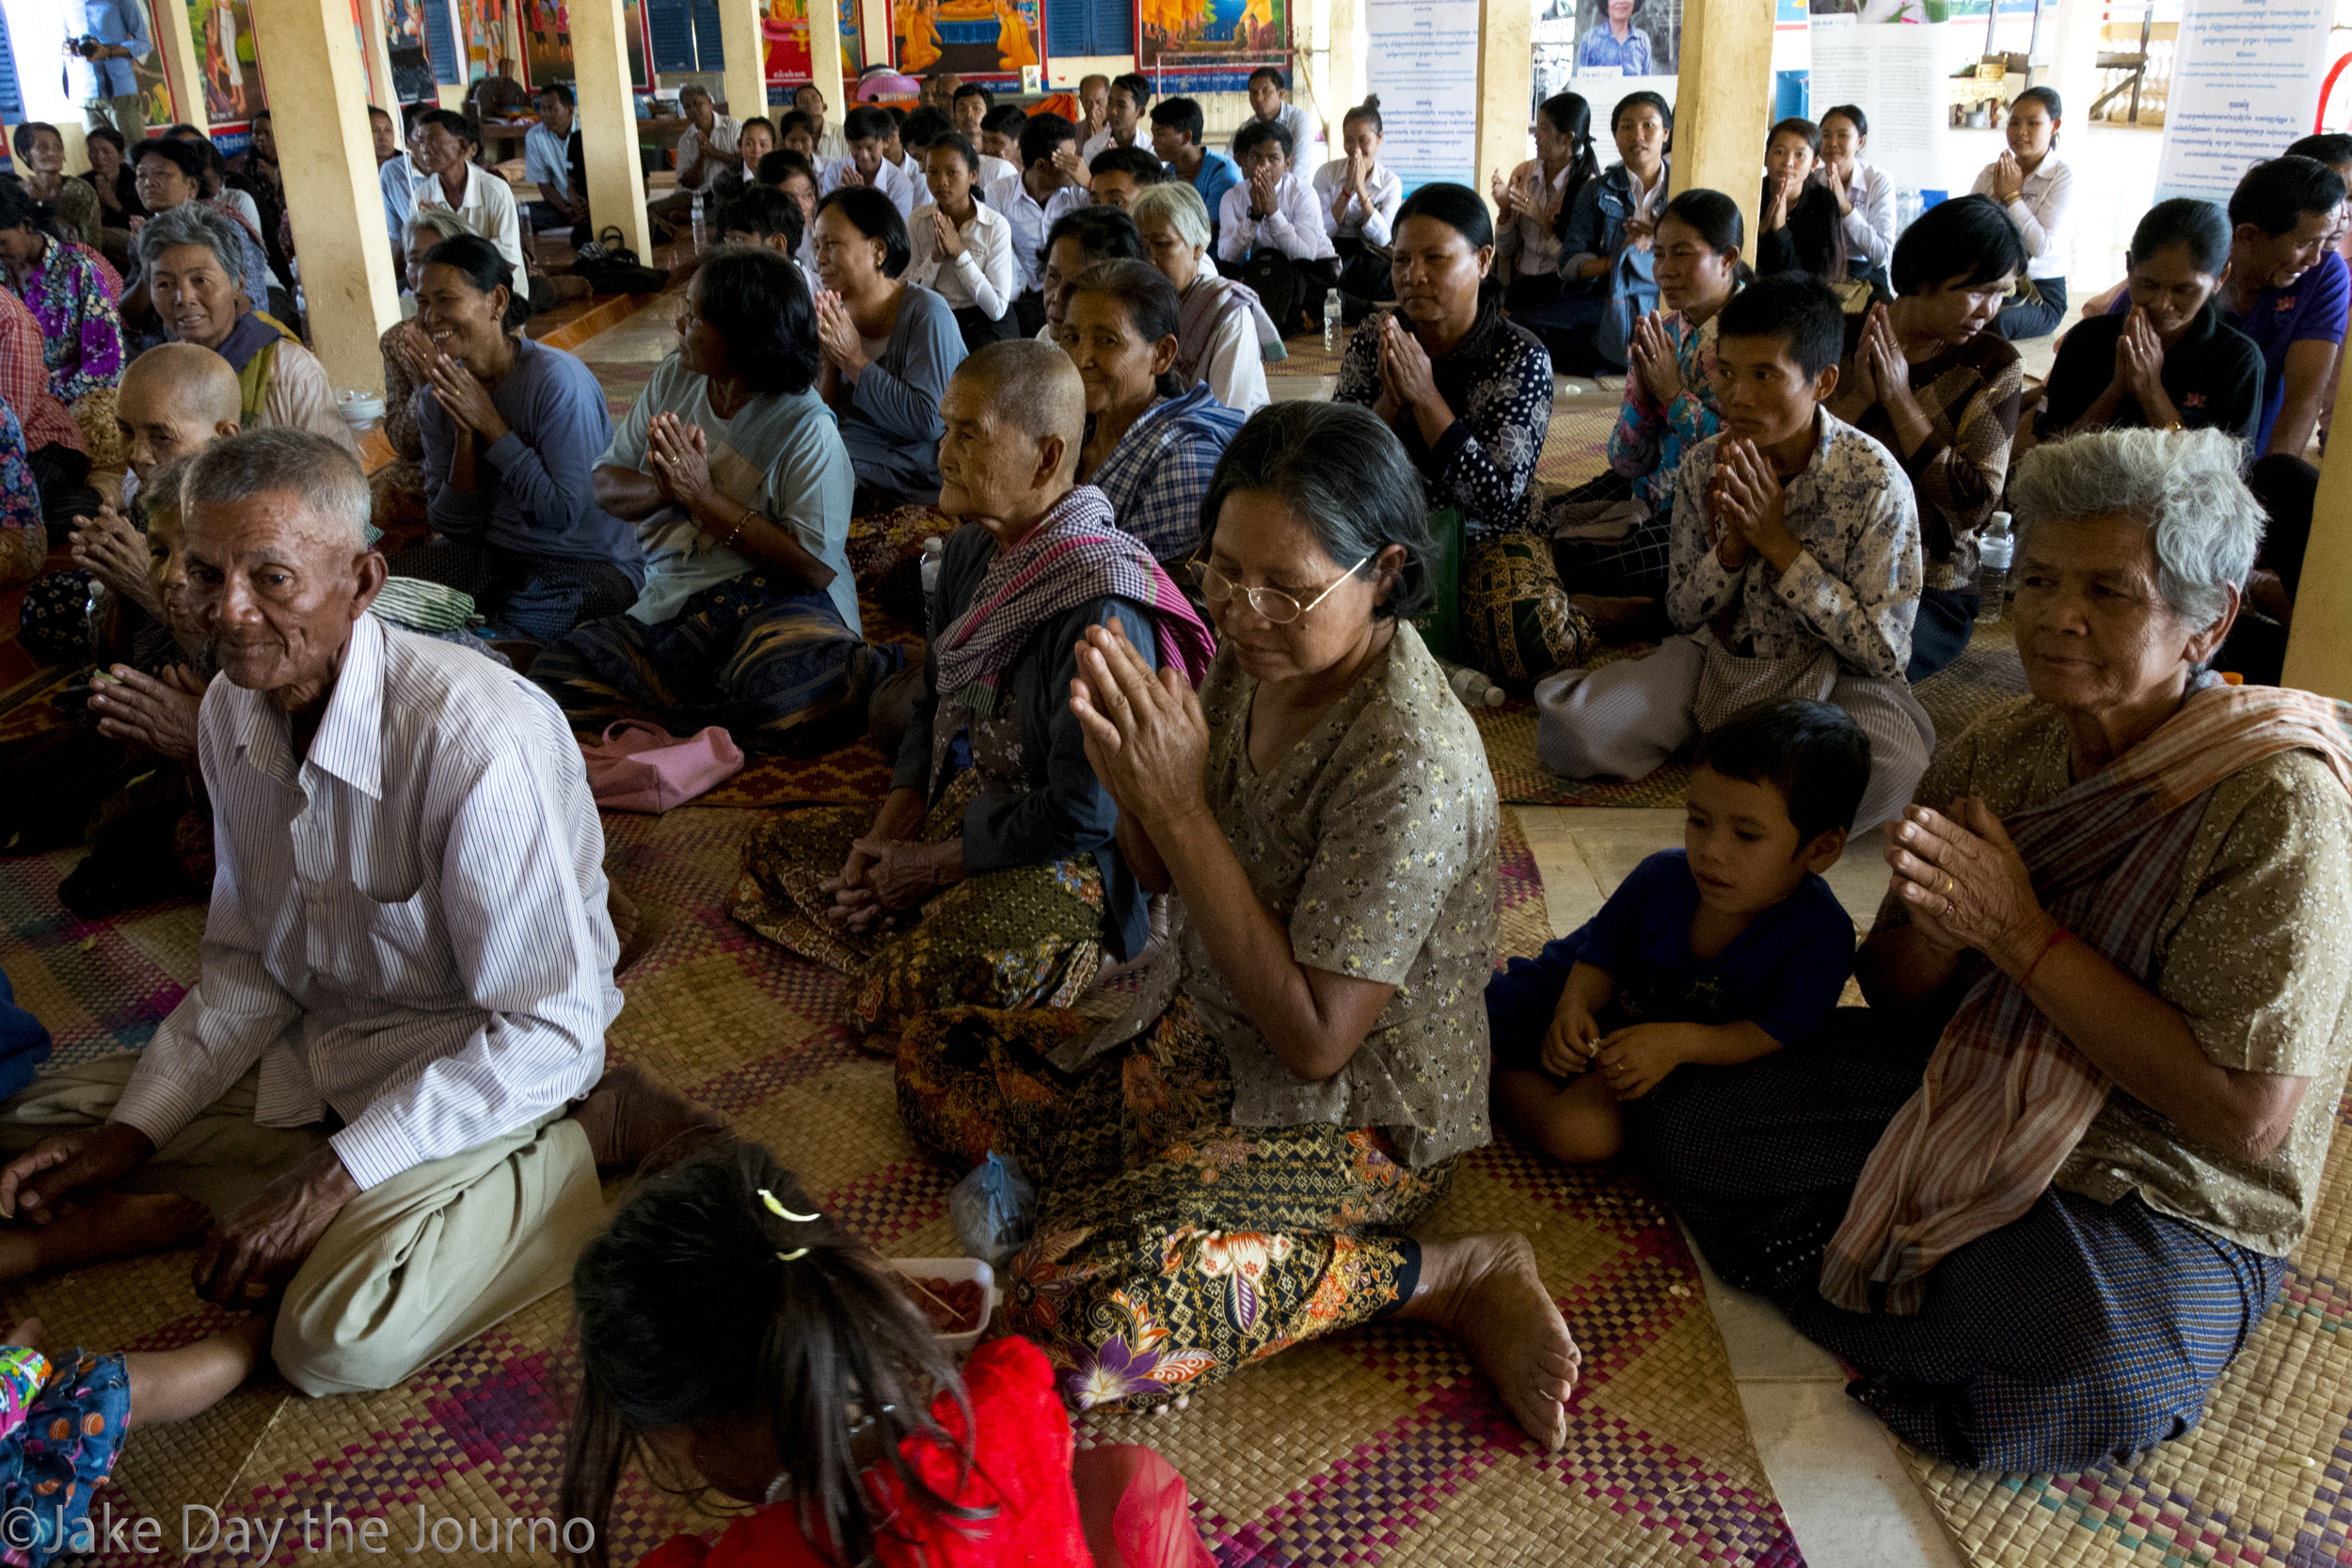 Members of the Ta Ann commune pray during a testimonial ceremony organised by the Transcultural Psychosocial Organisation for the 'Healing and Reconciliation for Victims of Torture of Khmer Rouge Trauma' program at Ta Ann village, Ta Ann commune, Kralanh district, Siem Reap province on 18/01/18 by Jake Day. Members of the Ta Ann Commune and local school children come to the ceremony to witness the survivors testimonies.